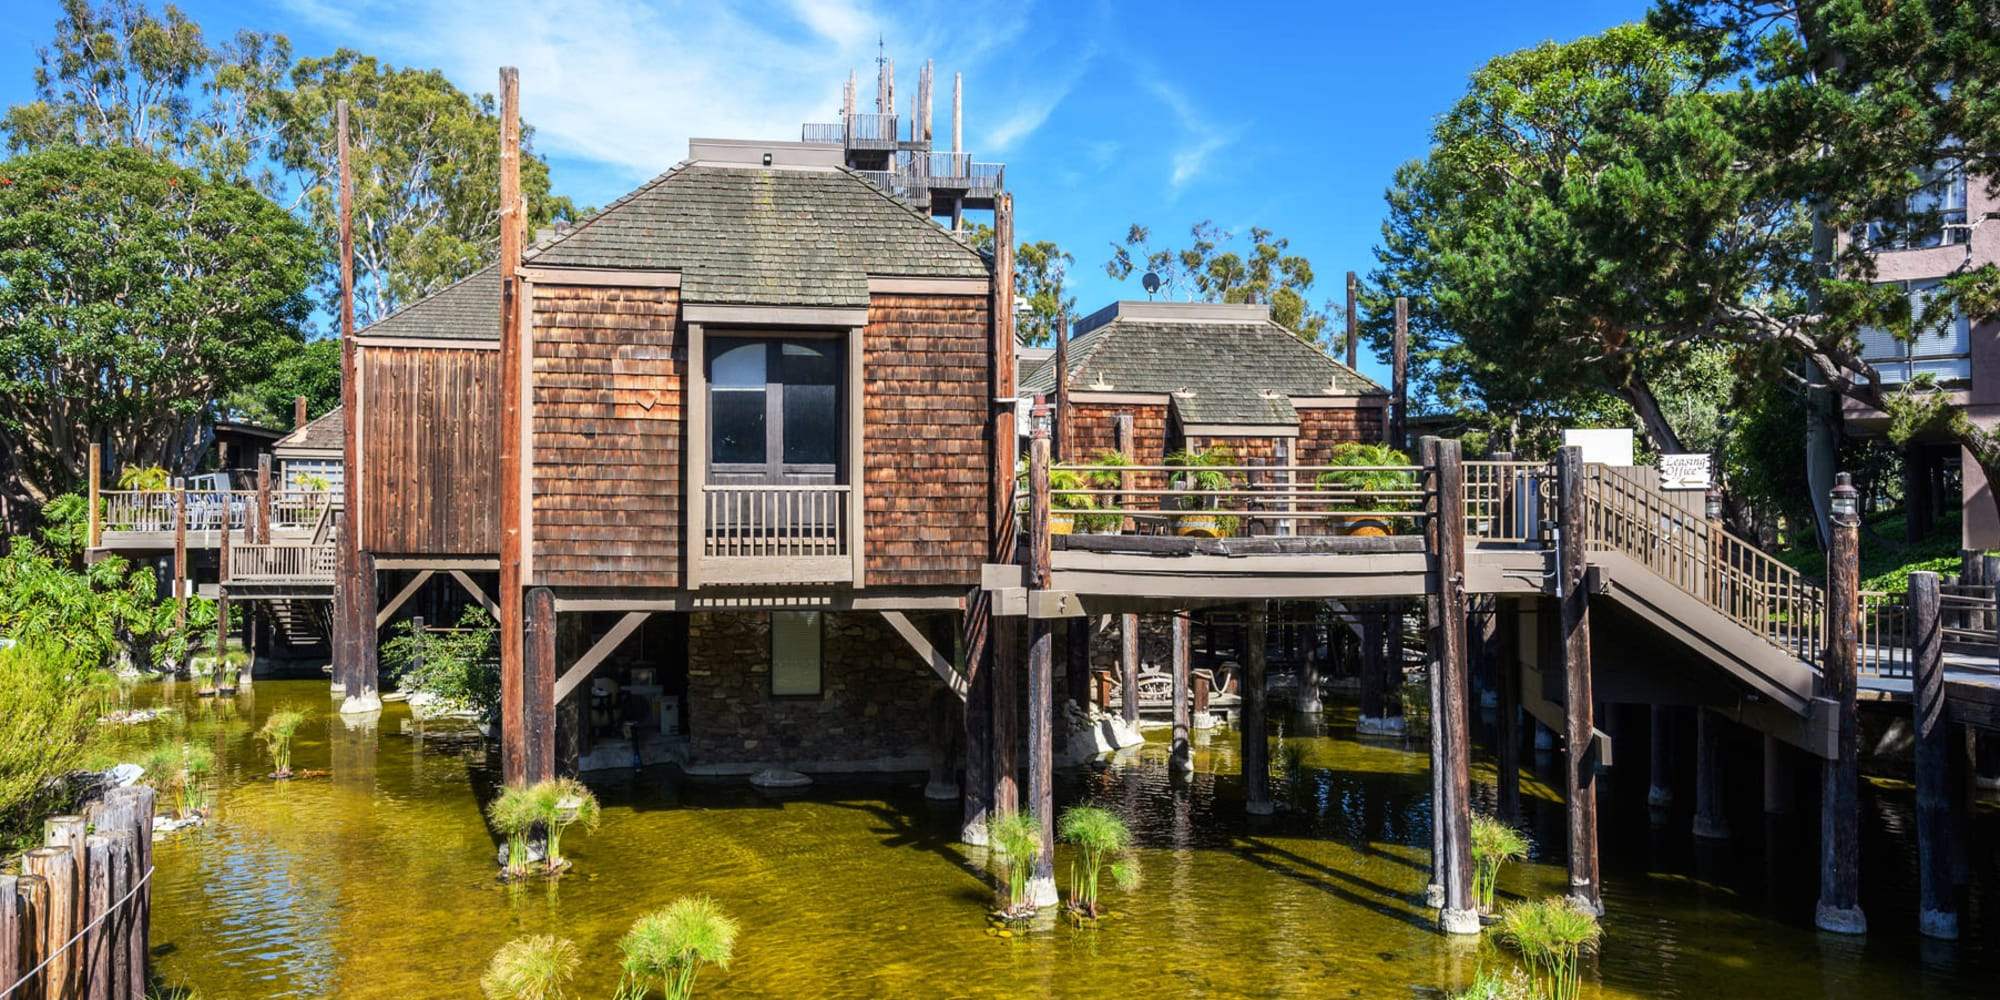 Resident clubhouse on stilts above the lagoon at Mariners Village in Marina del Rey, California